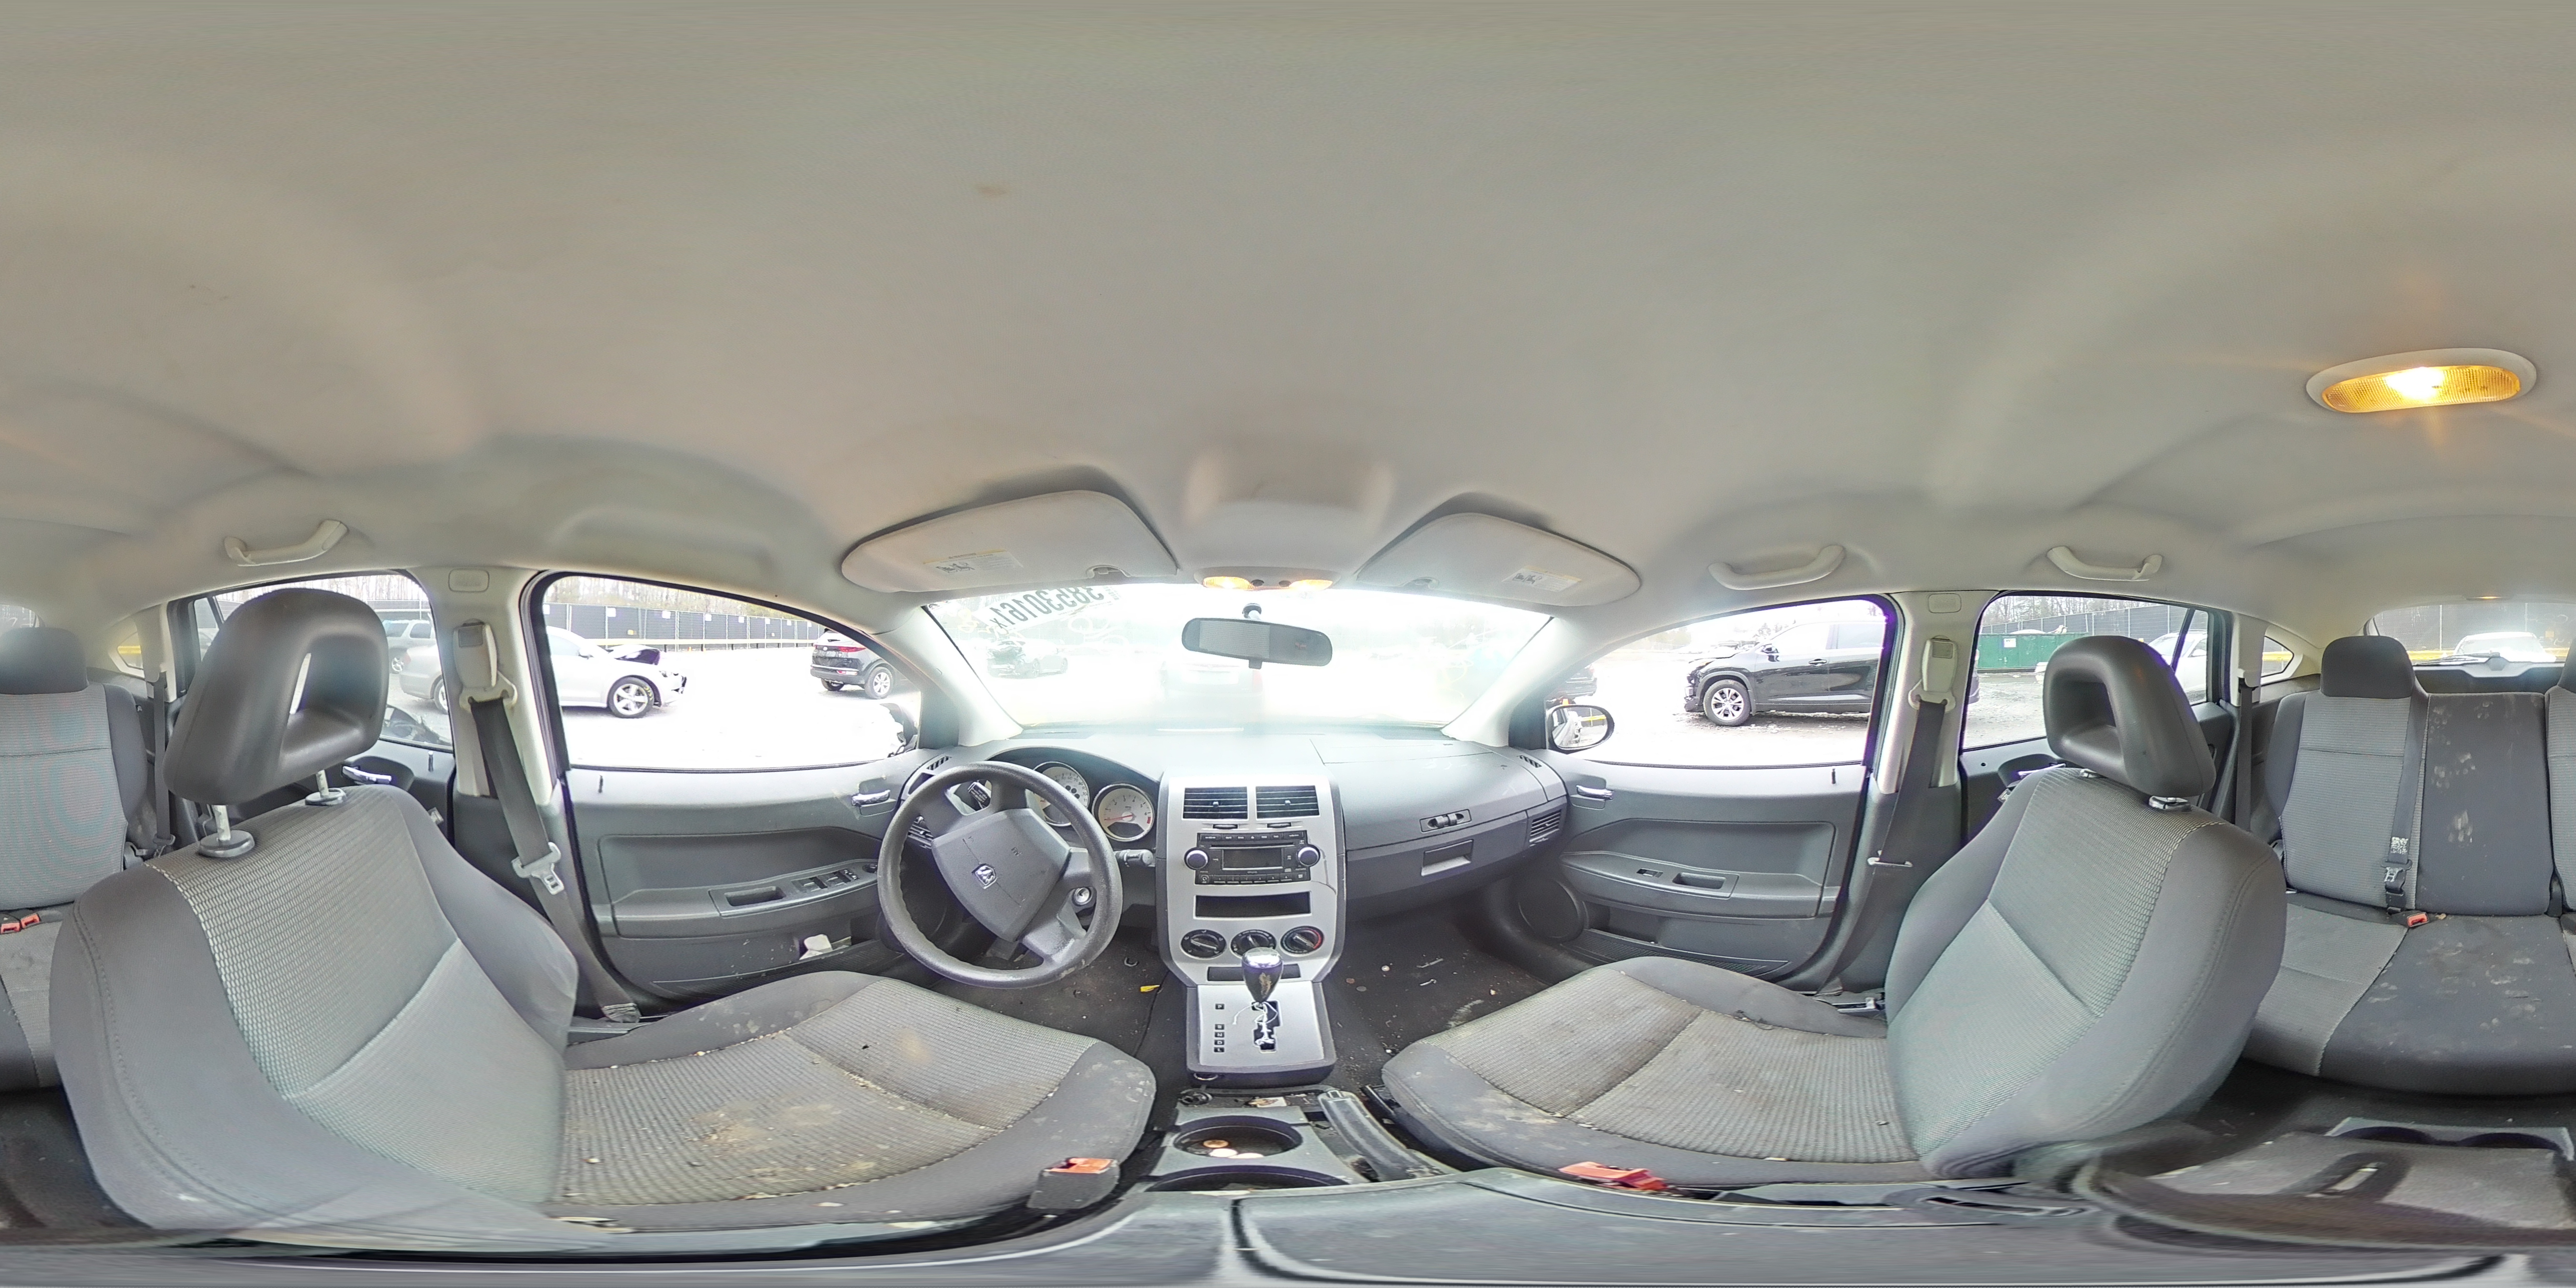 2008 DODGE CALIBER SX - Other View